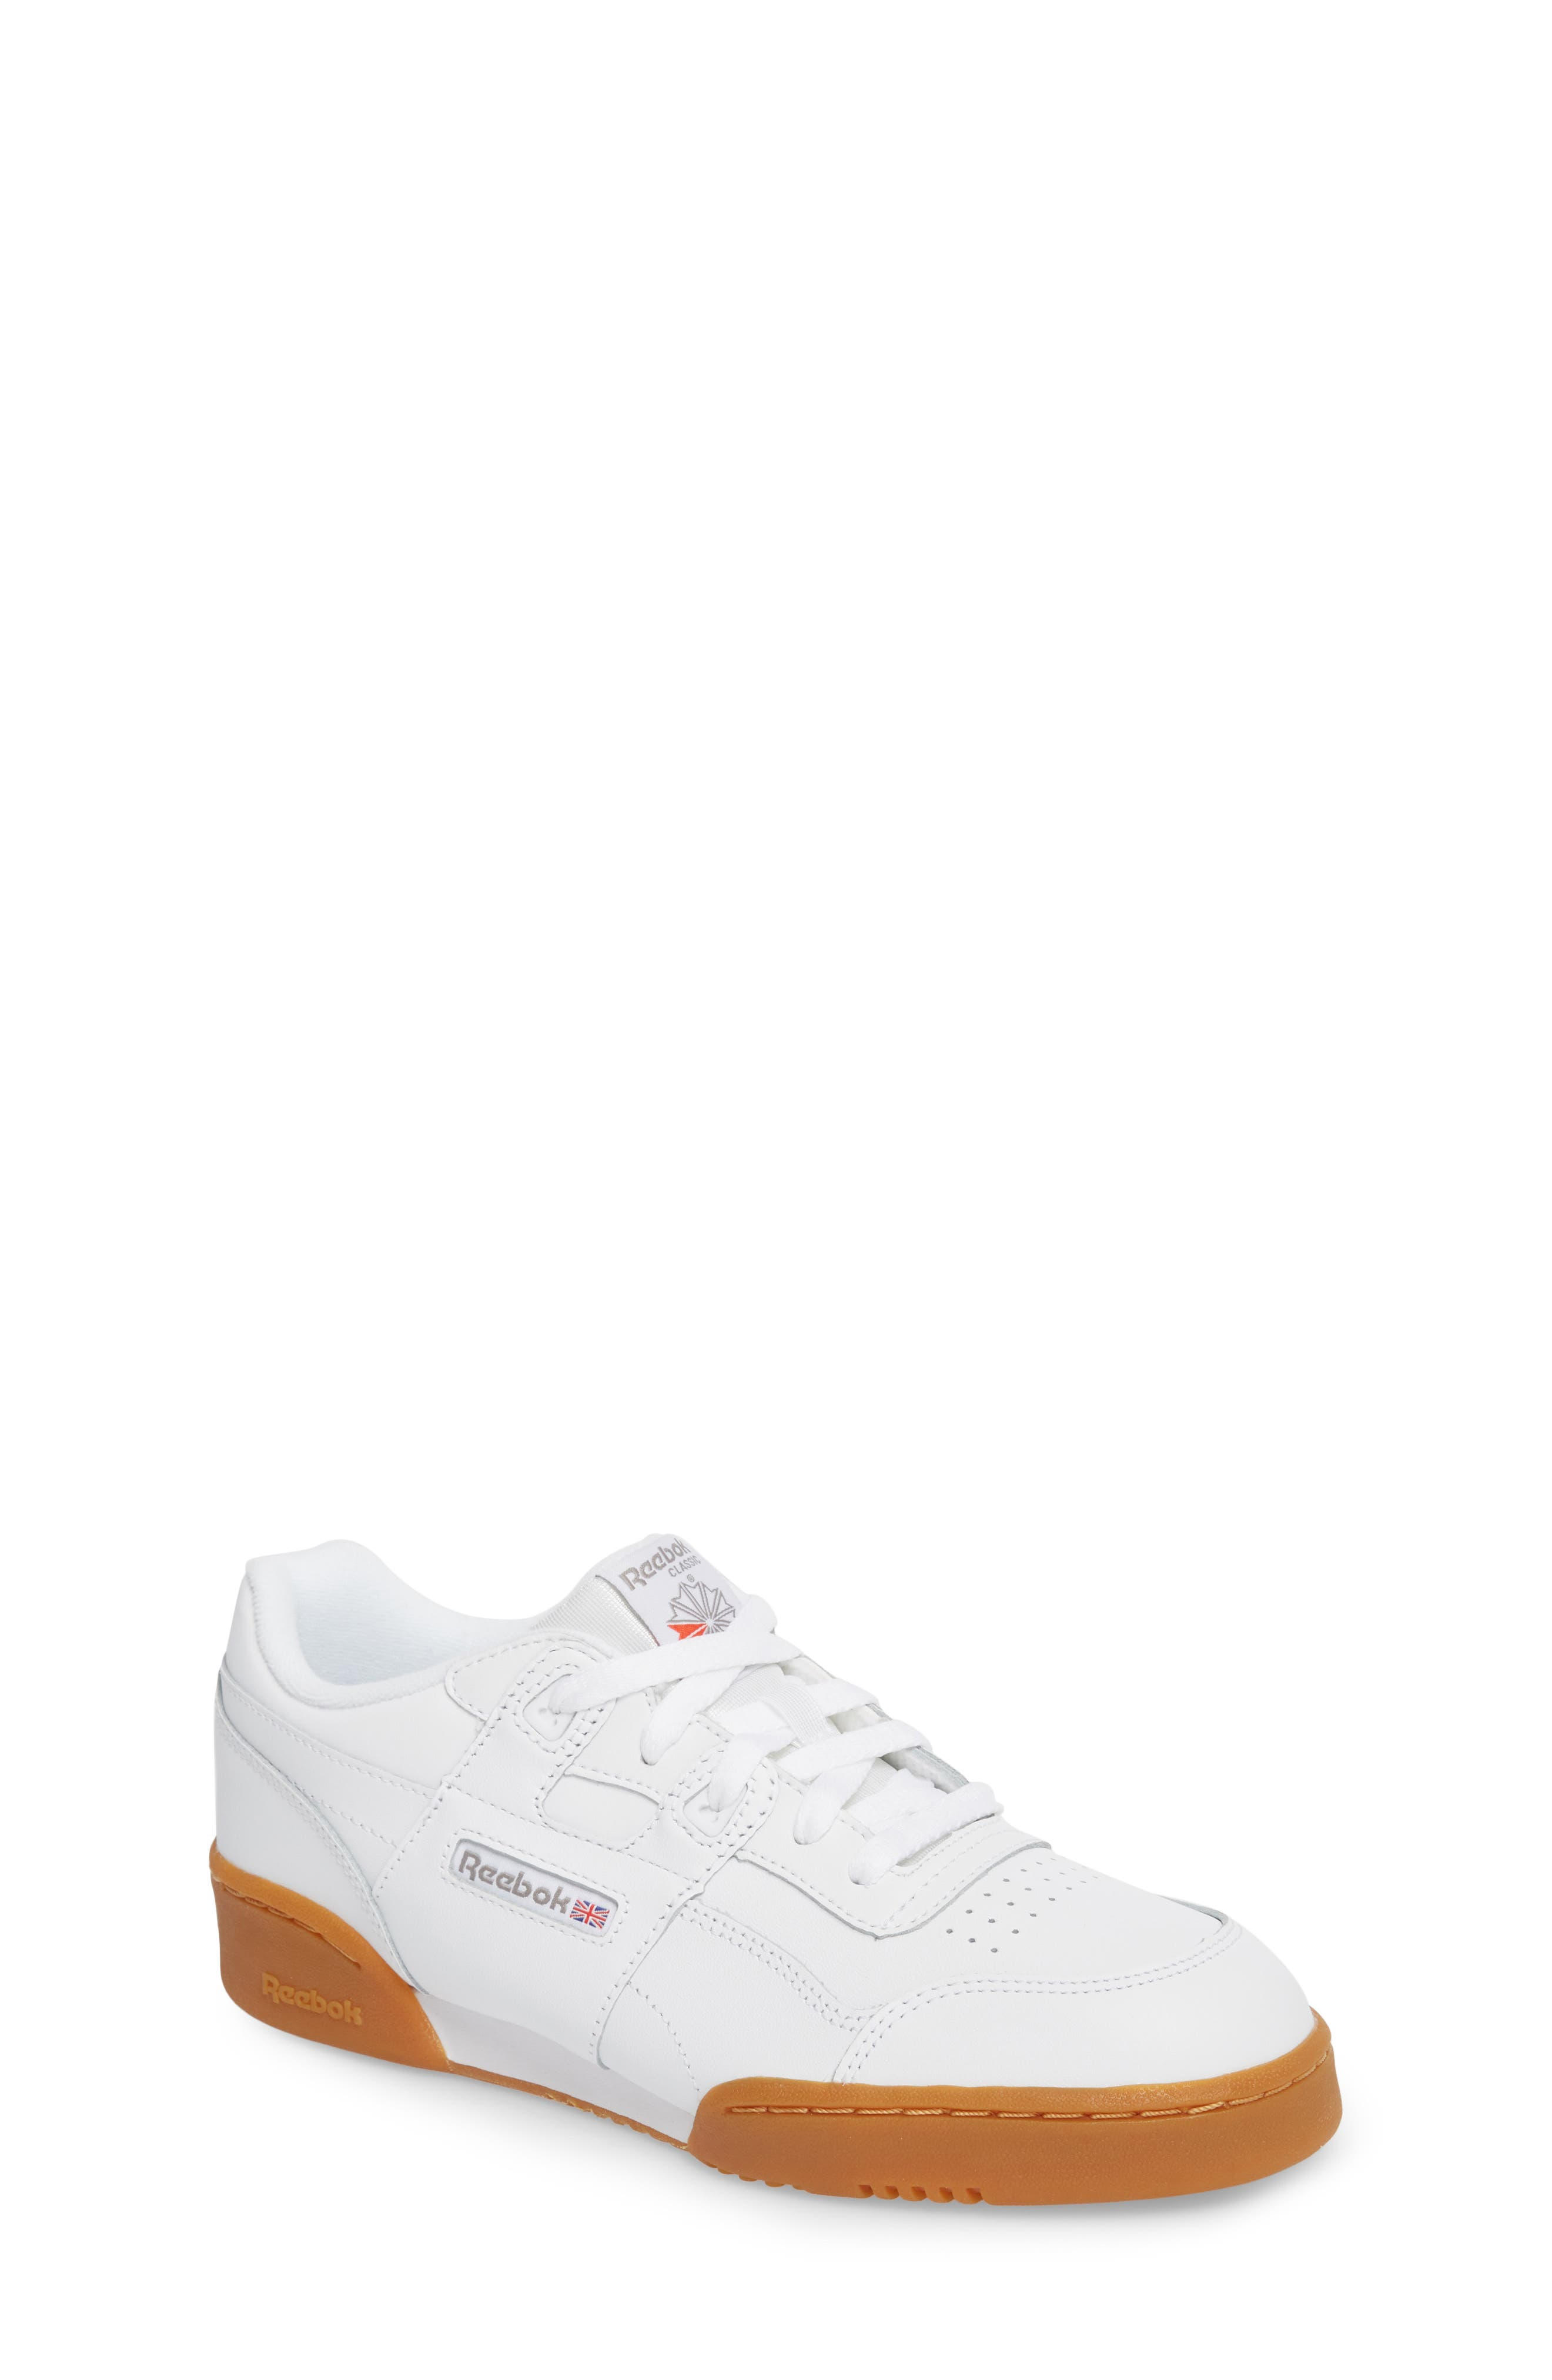 Workout Plus Sneaker,                         Main,                         color, WHITE